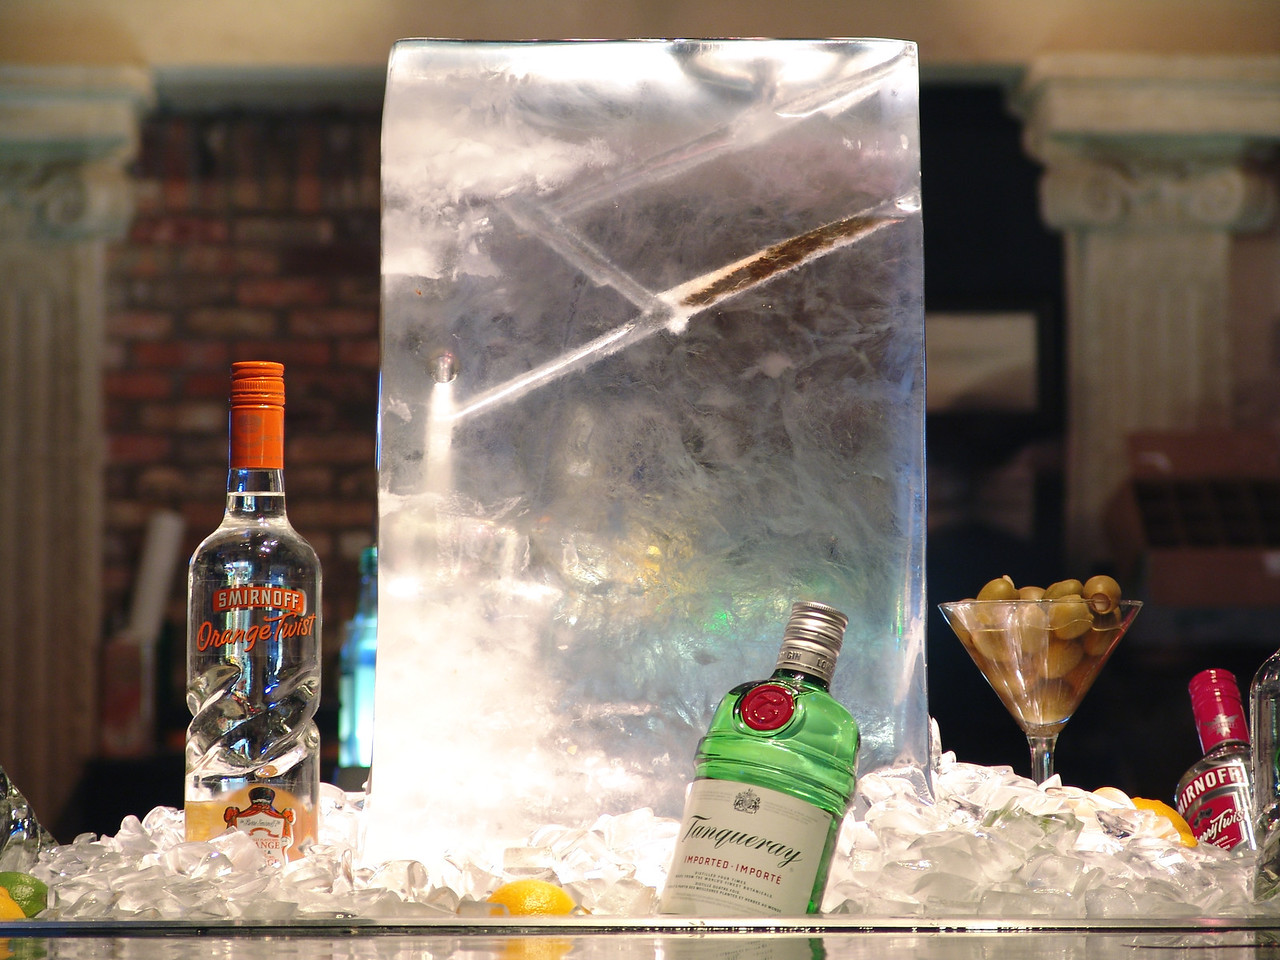 Earls lounge where they feature an ice block they pour martinis through.